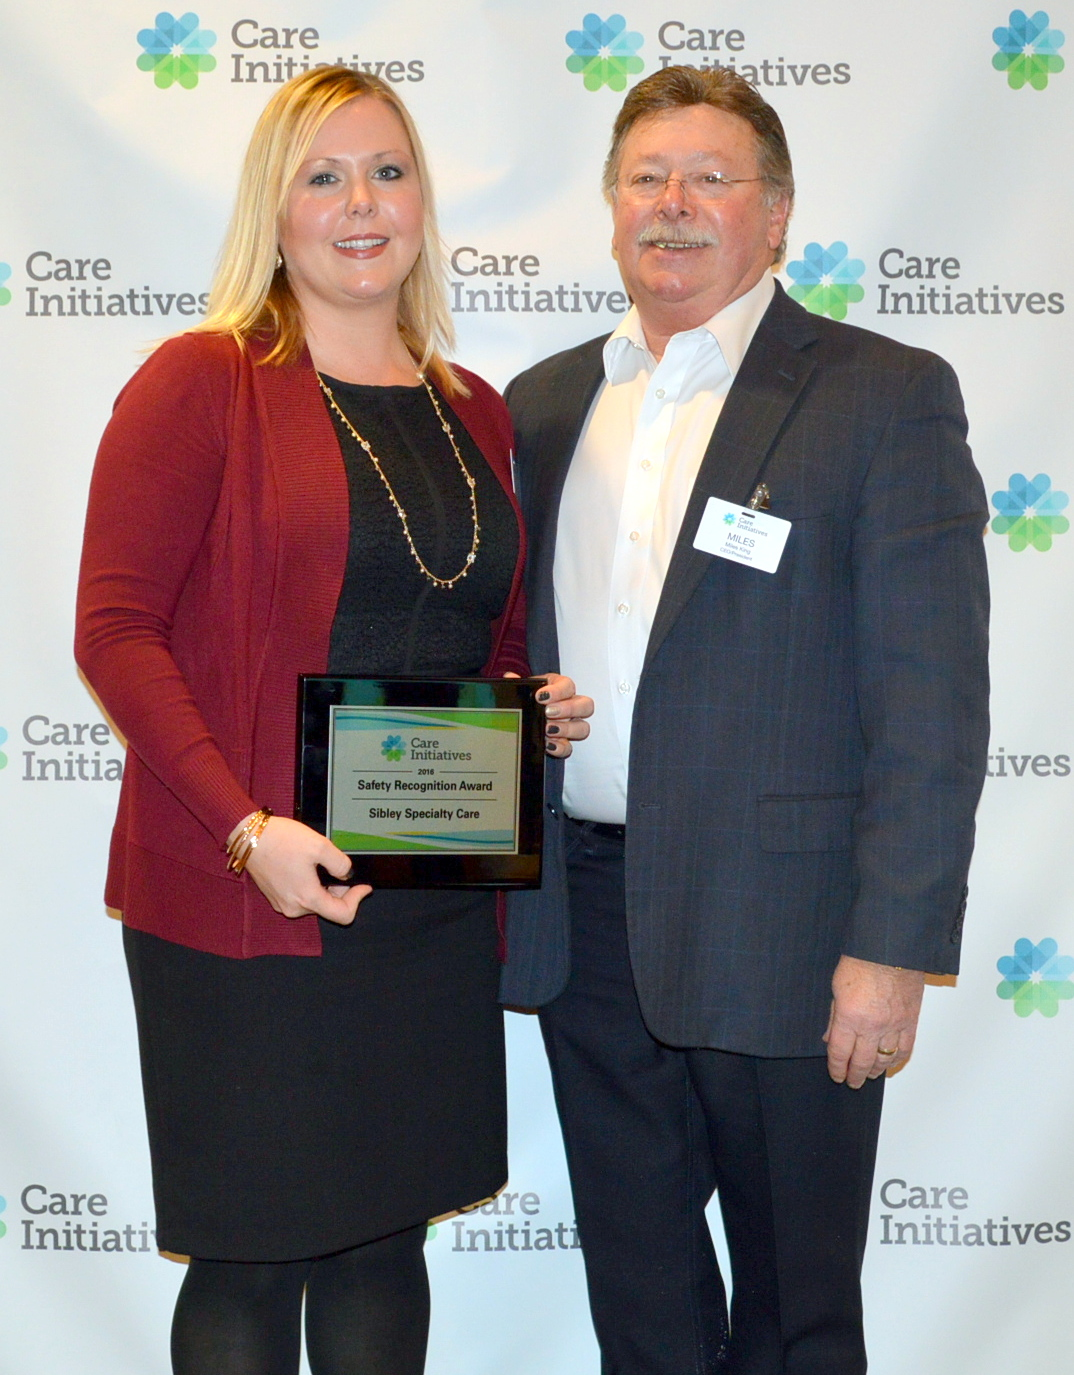 Sibley Specialty Care safety award